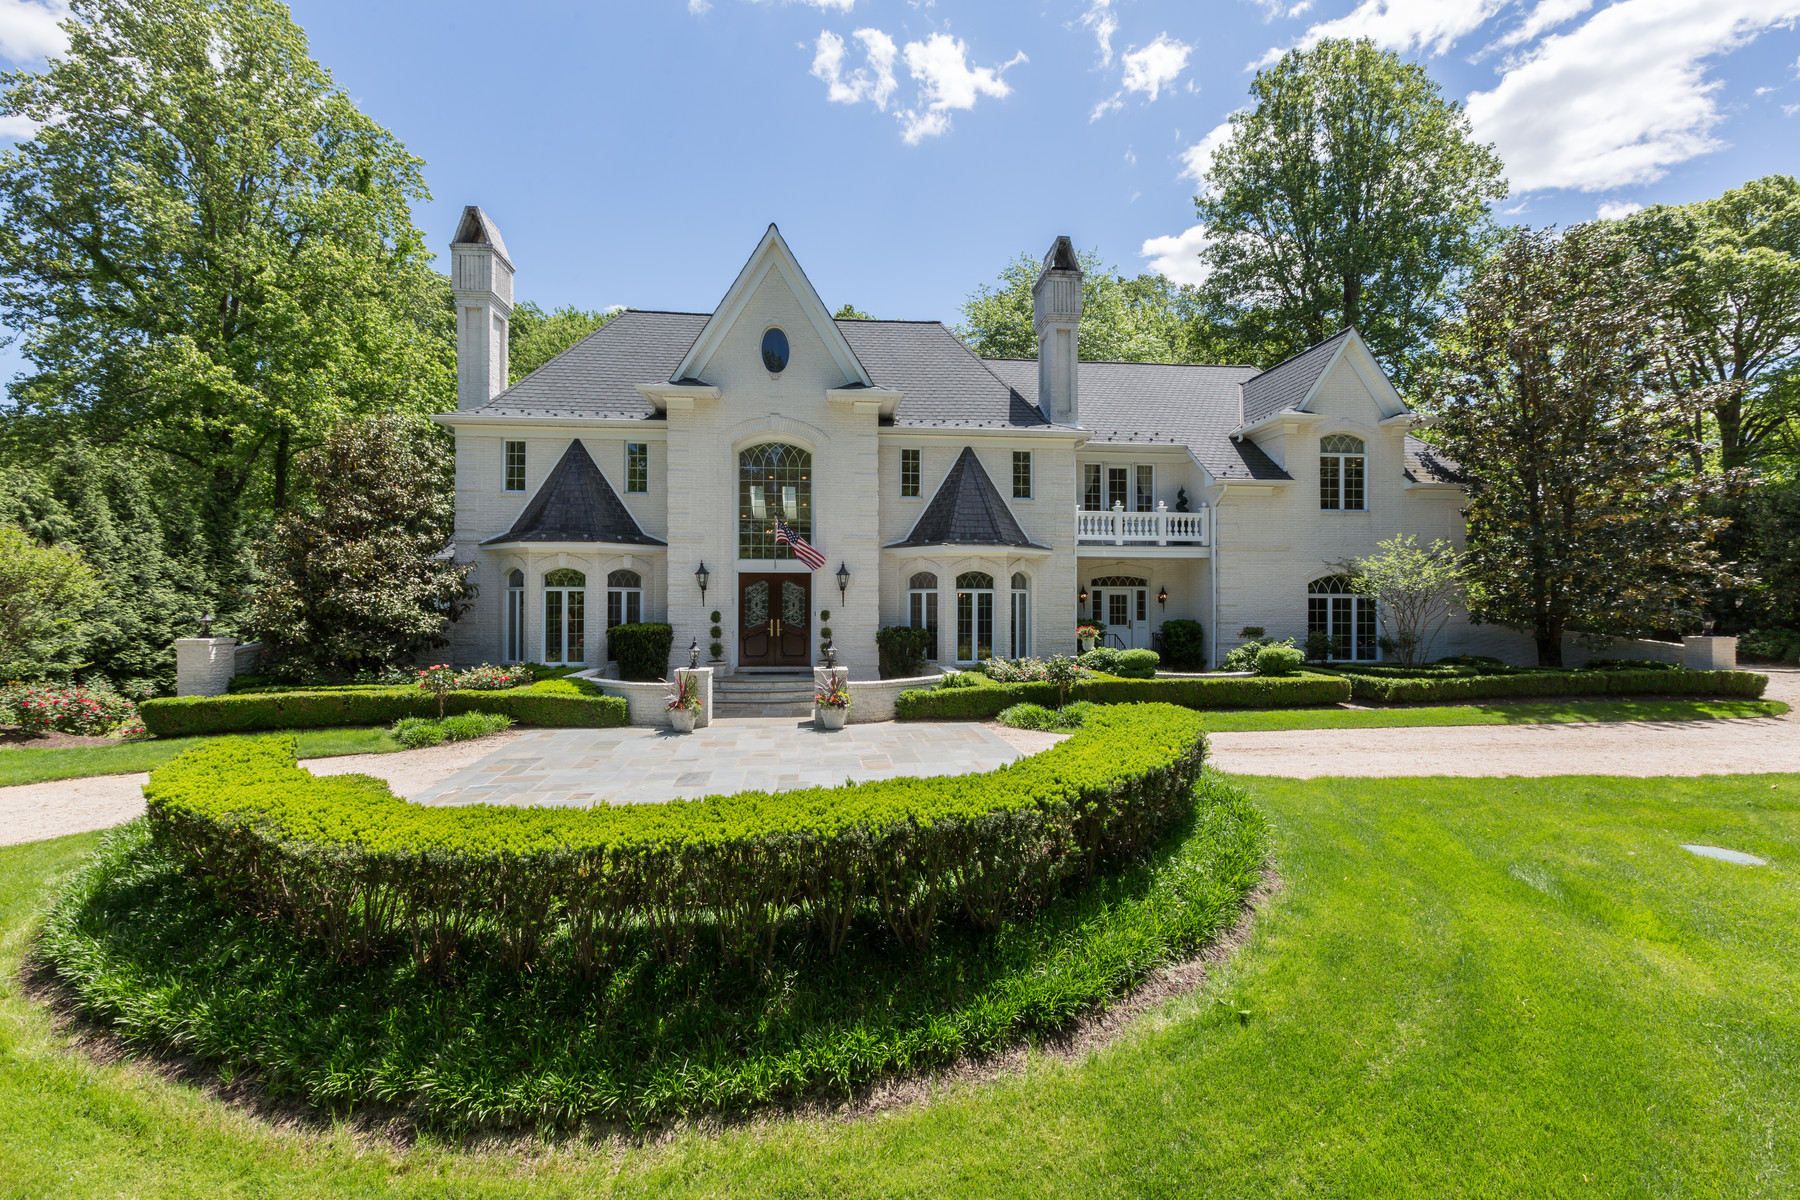 Single Family Home for Sale at 1031 Towlston Road, McLean 1031 Towlston Rd McLean, Virginia, 22102 United States